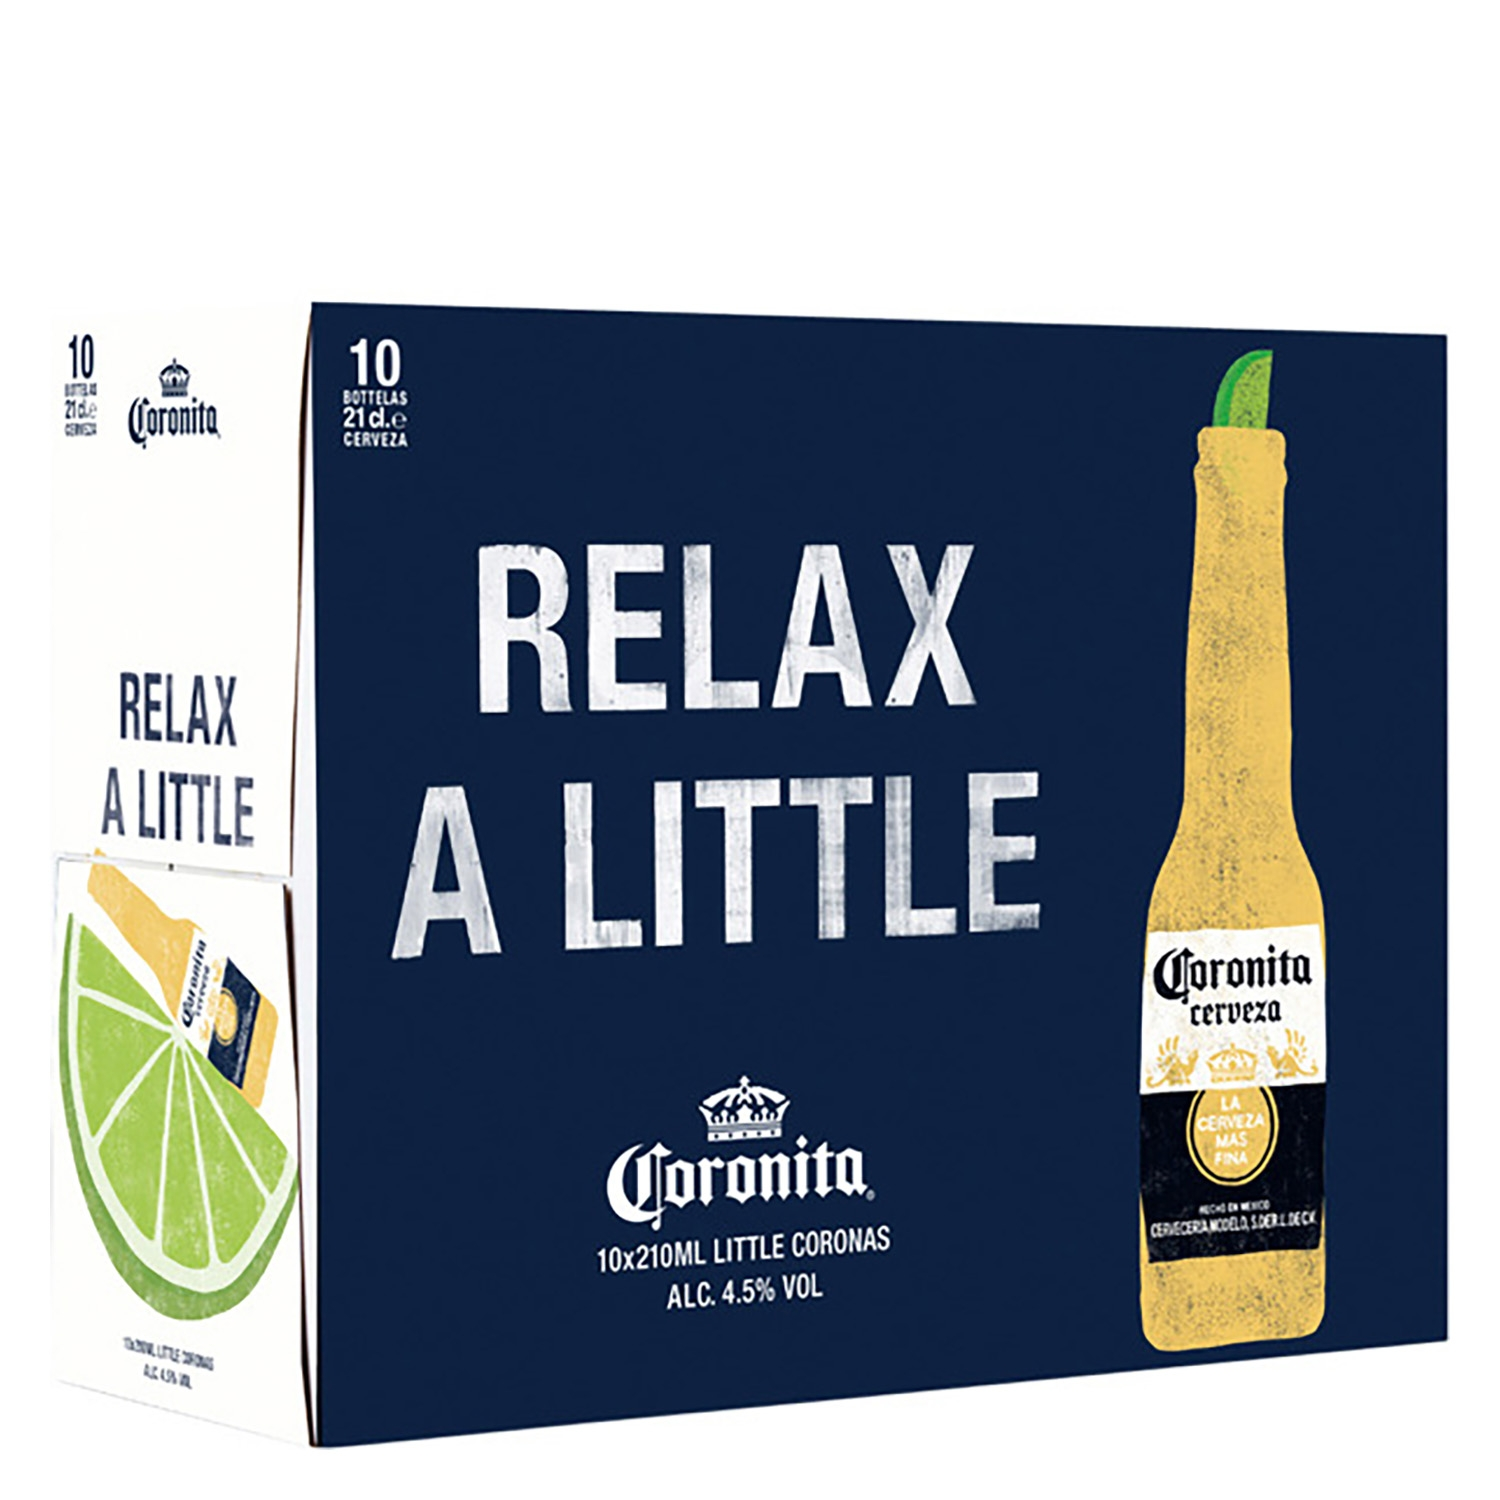 Cerveza Coronita pack de 10 botellas de 21 cl.